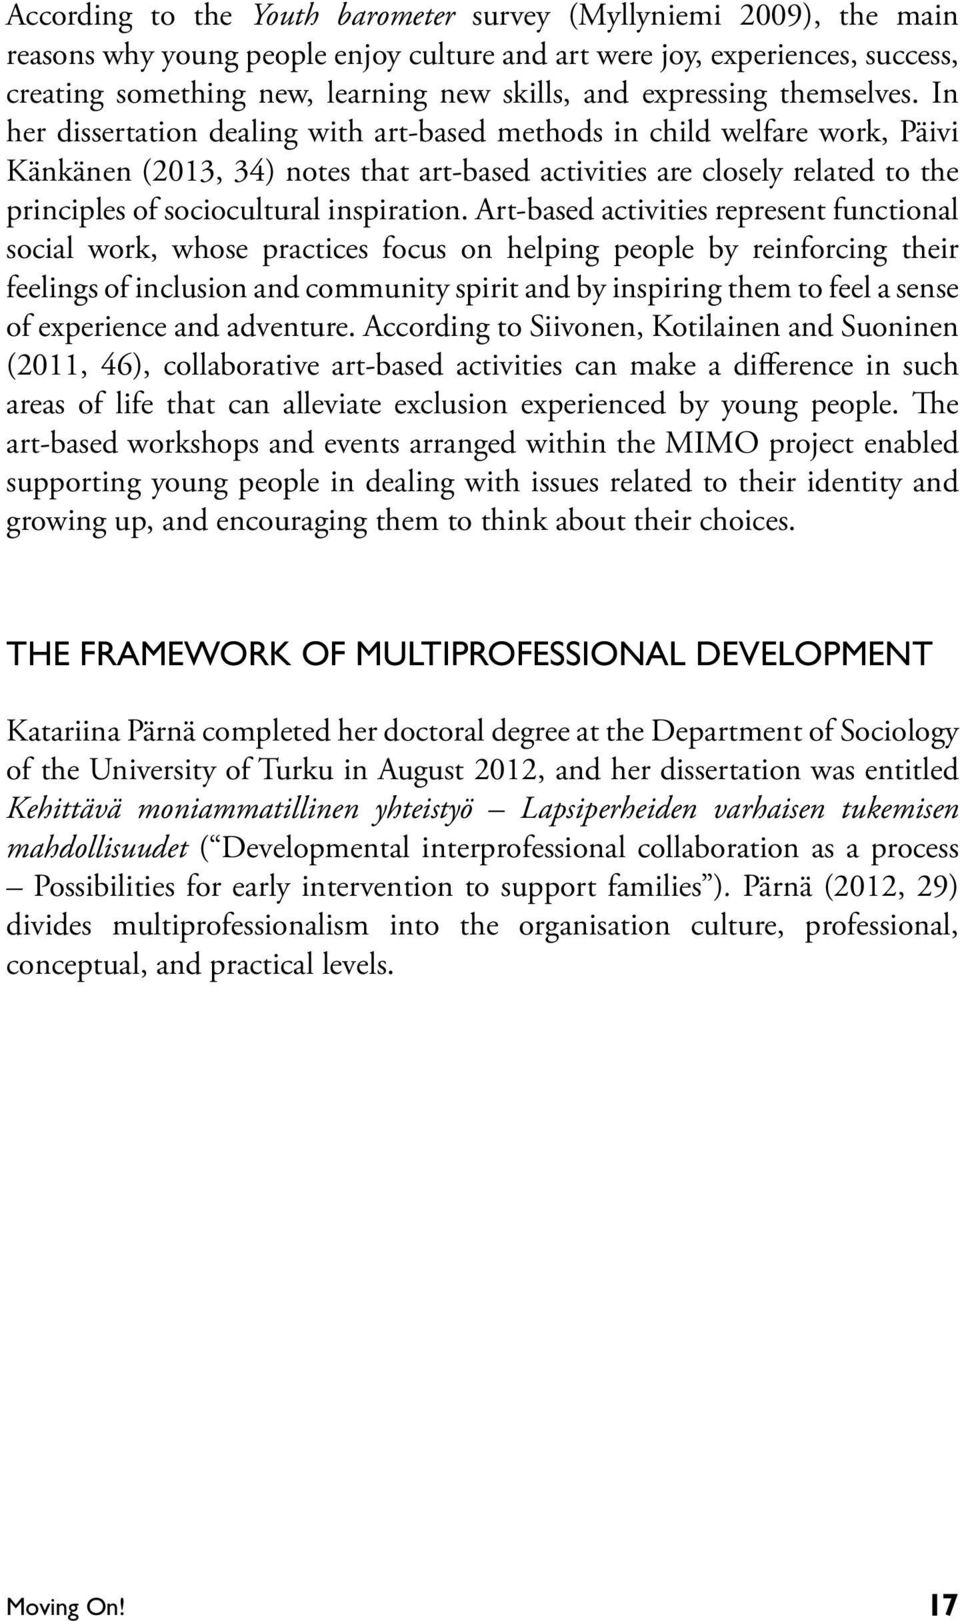 In her dissertation dealing with art-based methods in child welfare work, Päivi Känkänen (2013, 34) notes that art-based activities are closely related to the principles of sociocultural inspiration.